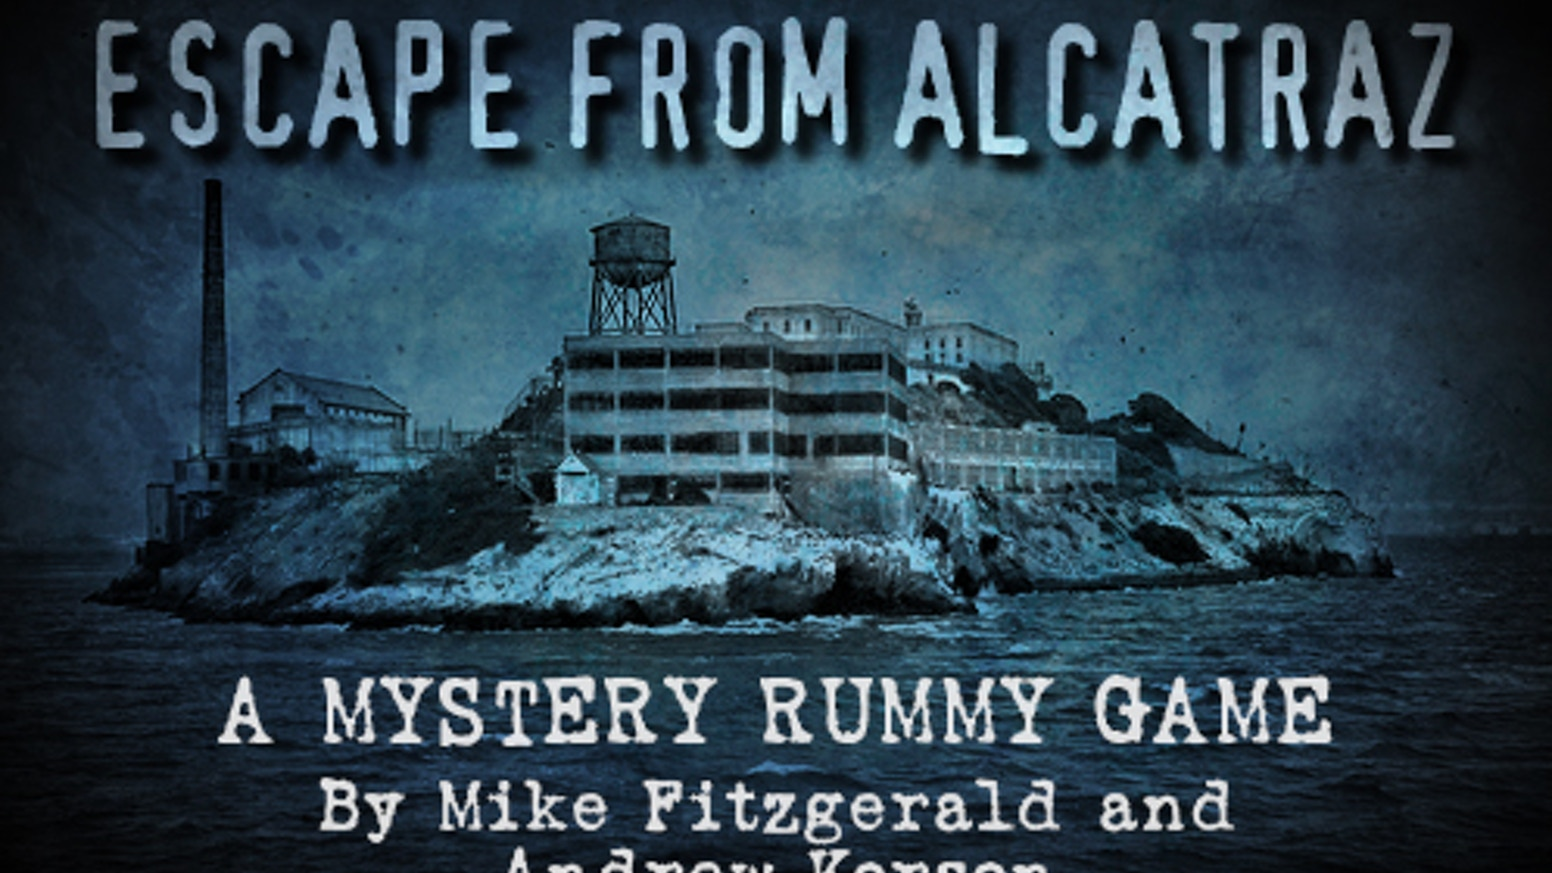 Escape from Alcatraz is an exciting new Mystery Rummy card game by Mike Fitzgerald and Andrew Korson.